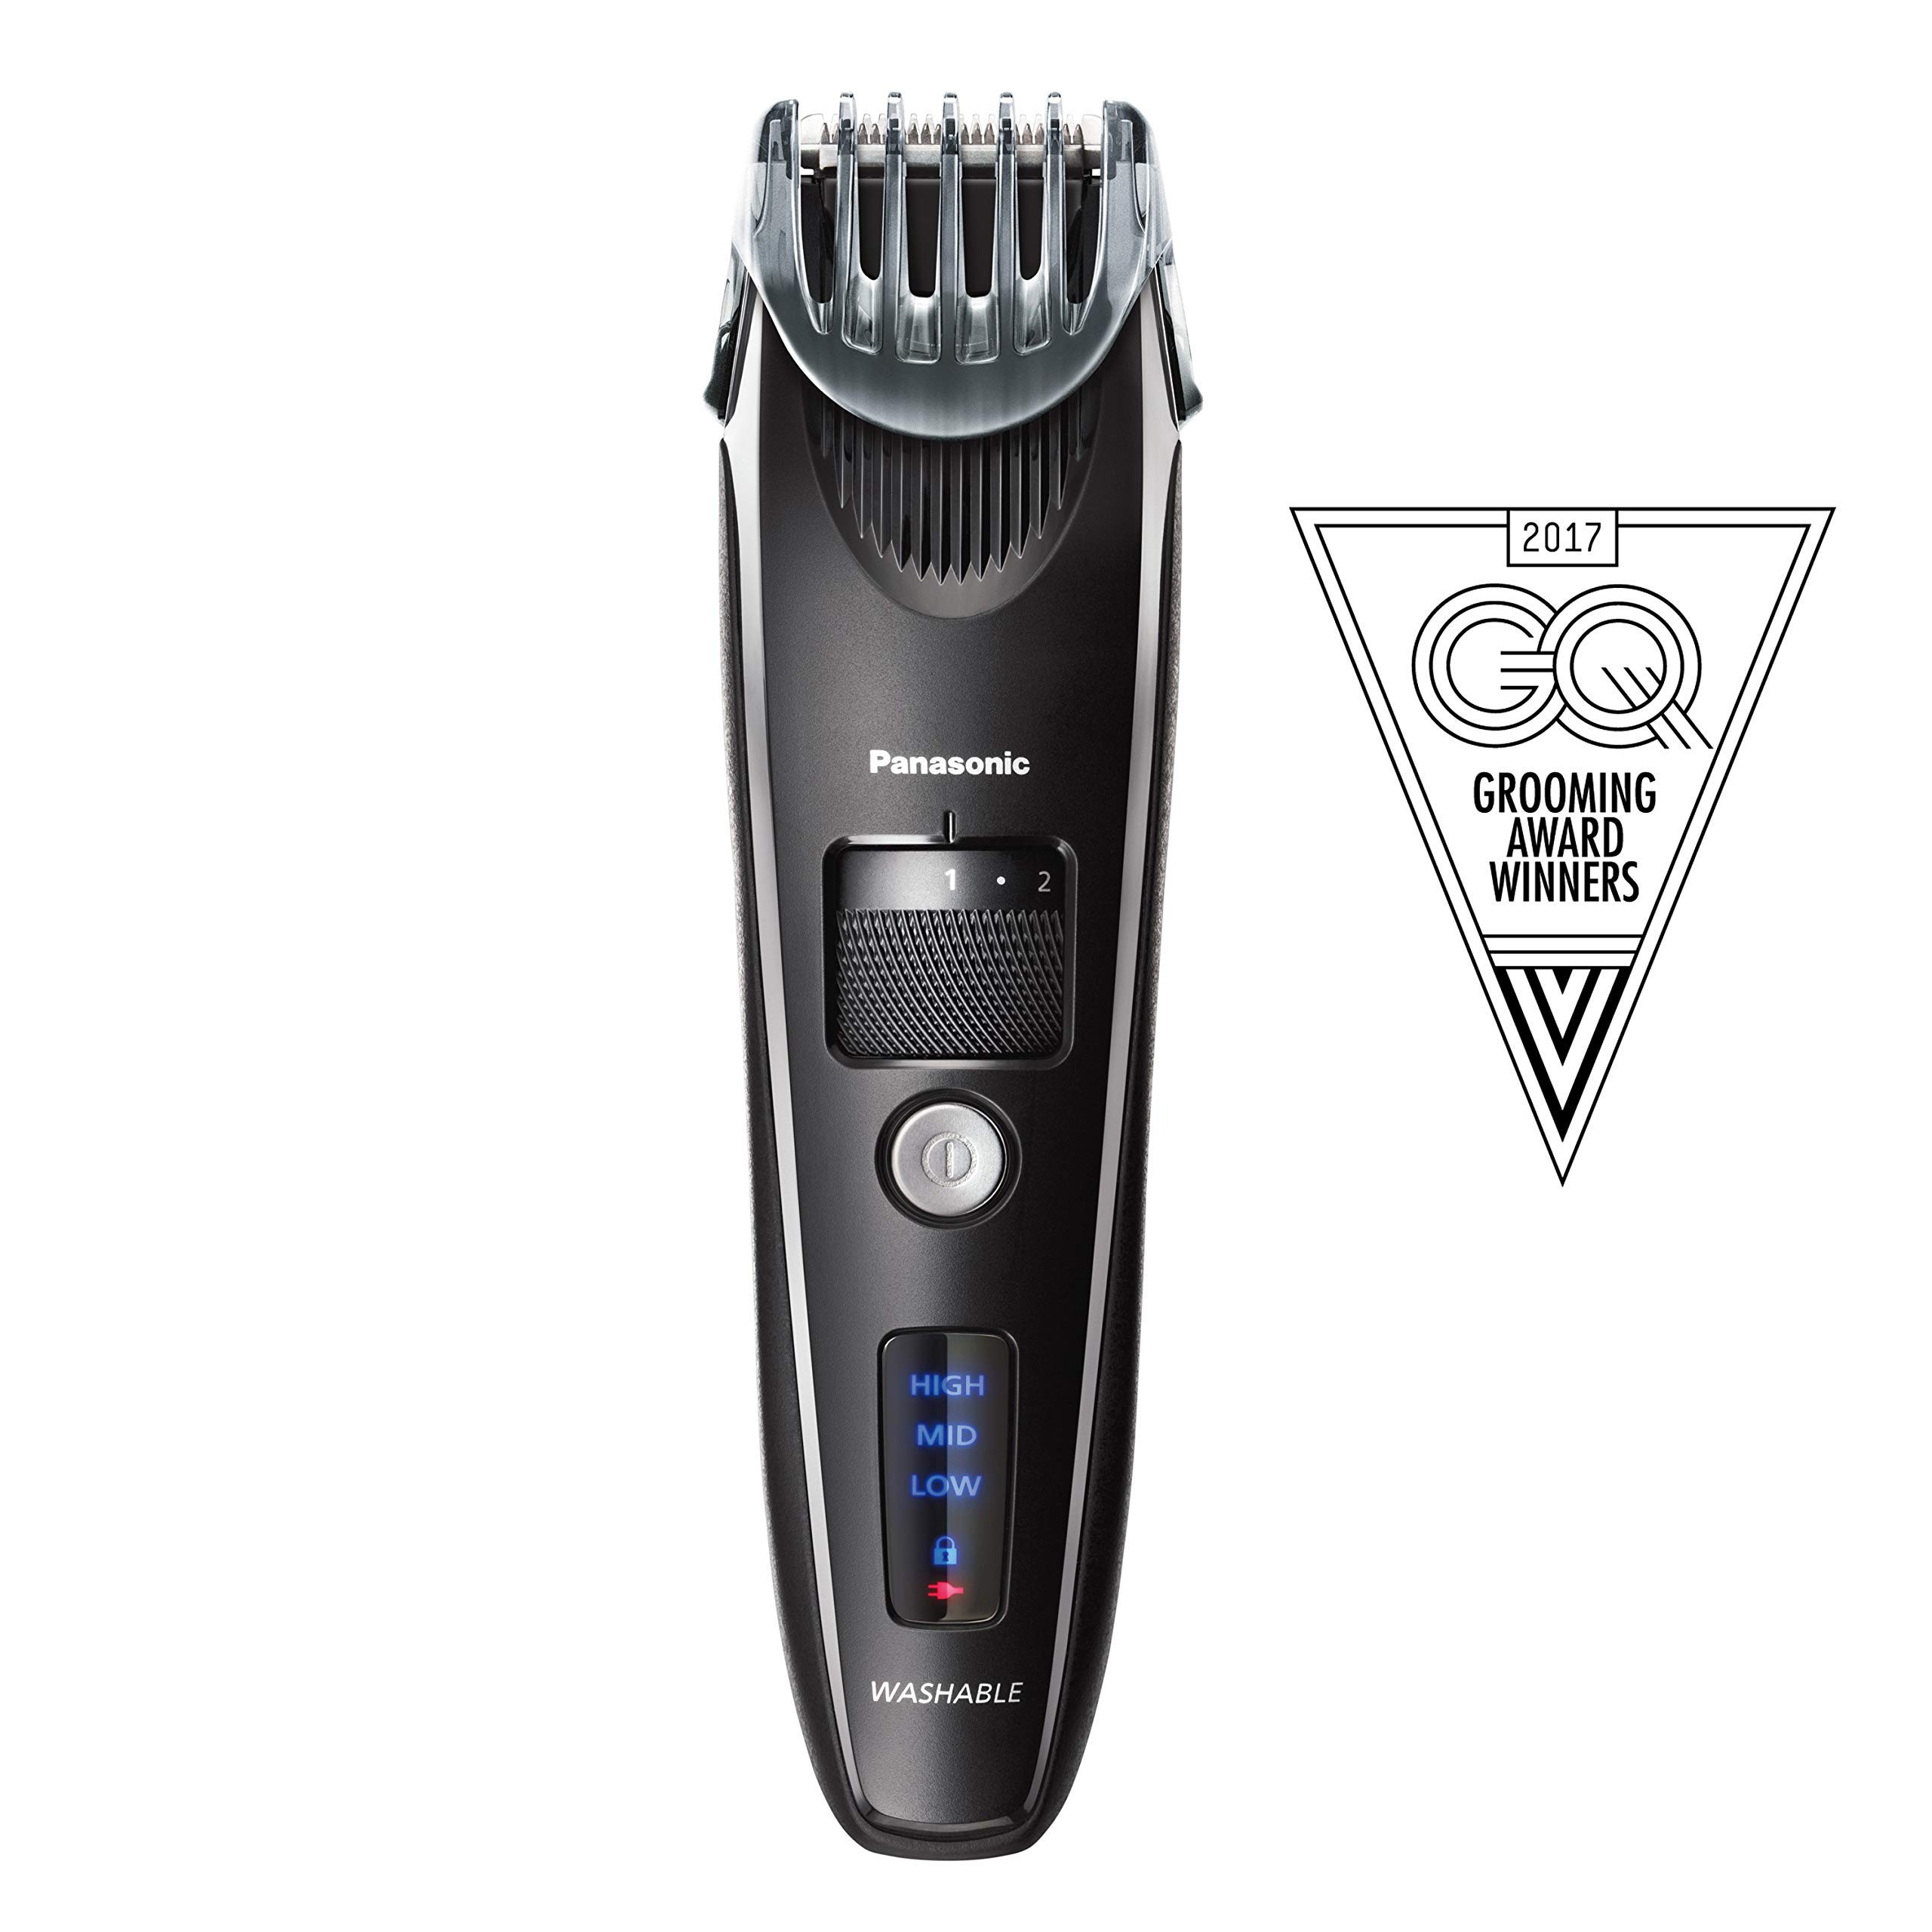 Panasonic Beard Trimmer for Men ER-SB40-K, Cordless/Corded Precision Power, Hair Clipper with Comb Attachment and 19 Adjustable Settings, Wet/Dry Use (Renewed) by Panasonic